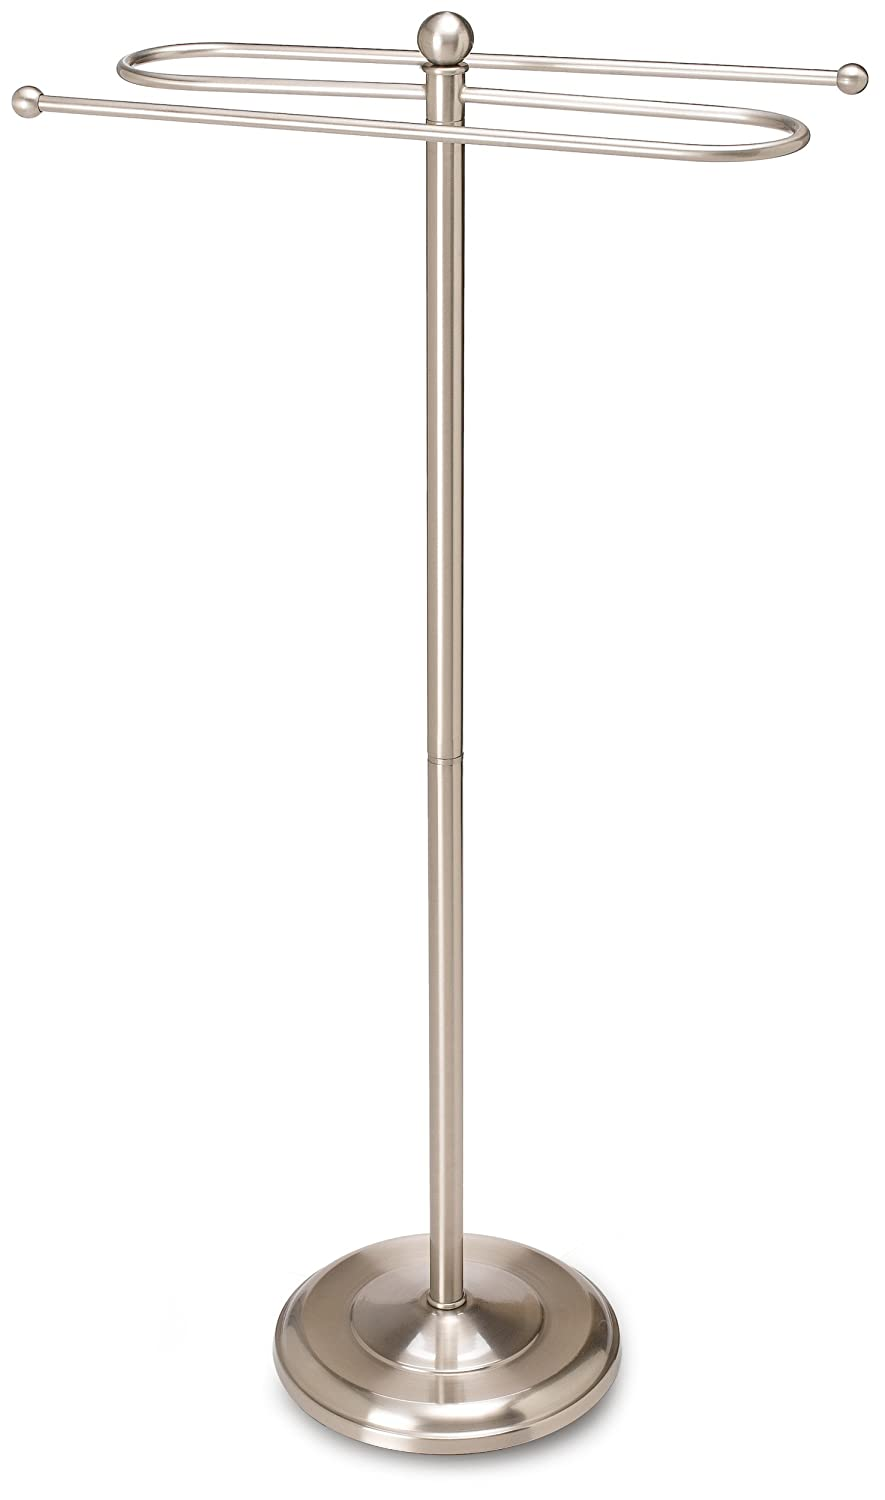 Taymor Floor Standing Towel Valet, Satin Nickel